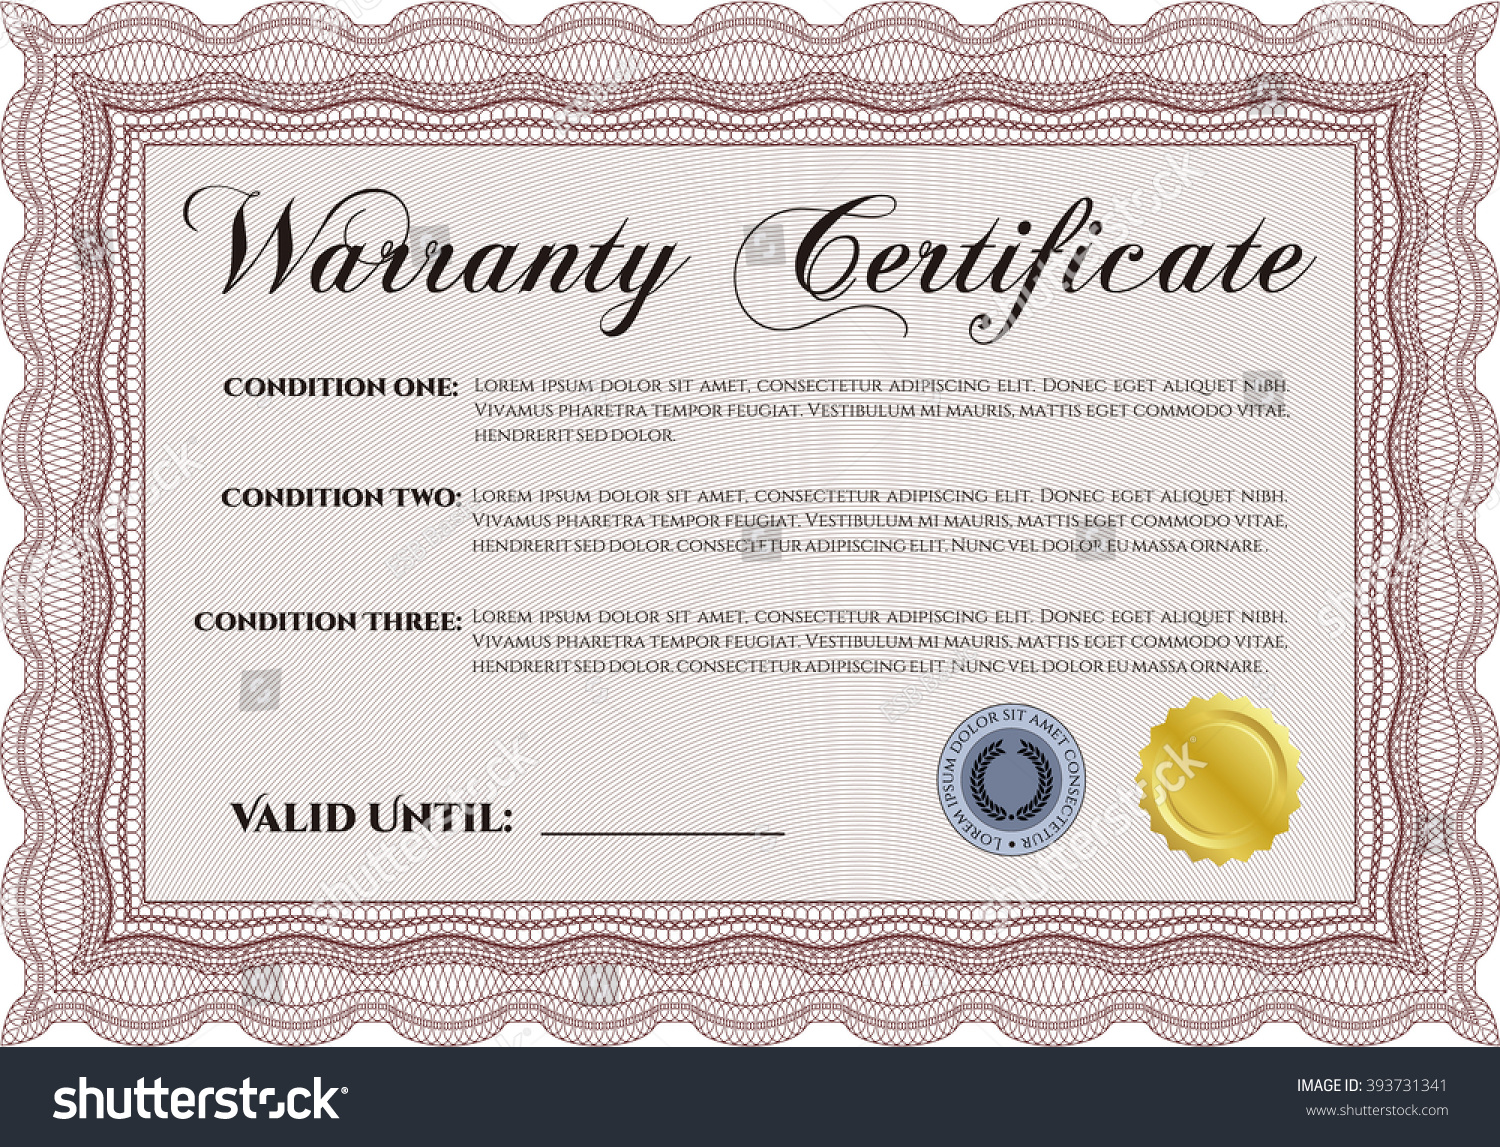 90 hole in one certificate template of course you need some free hole in one certificate template choice image templates ms office alramifo Choice Image